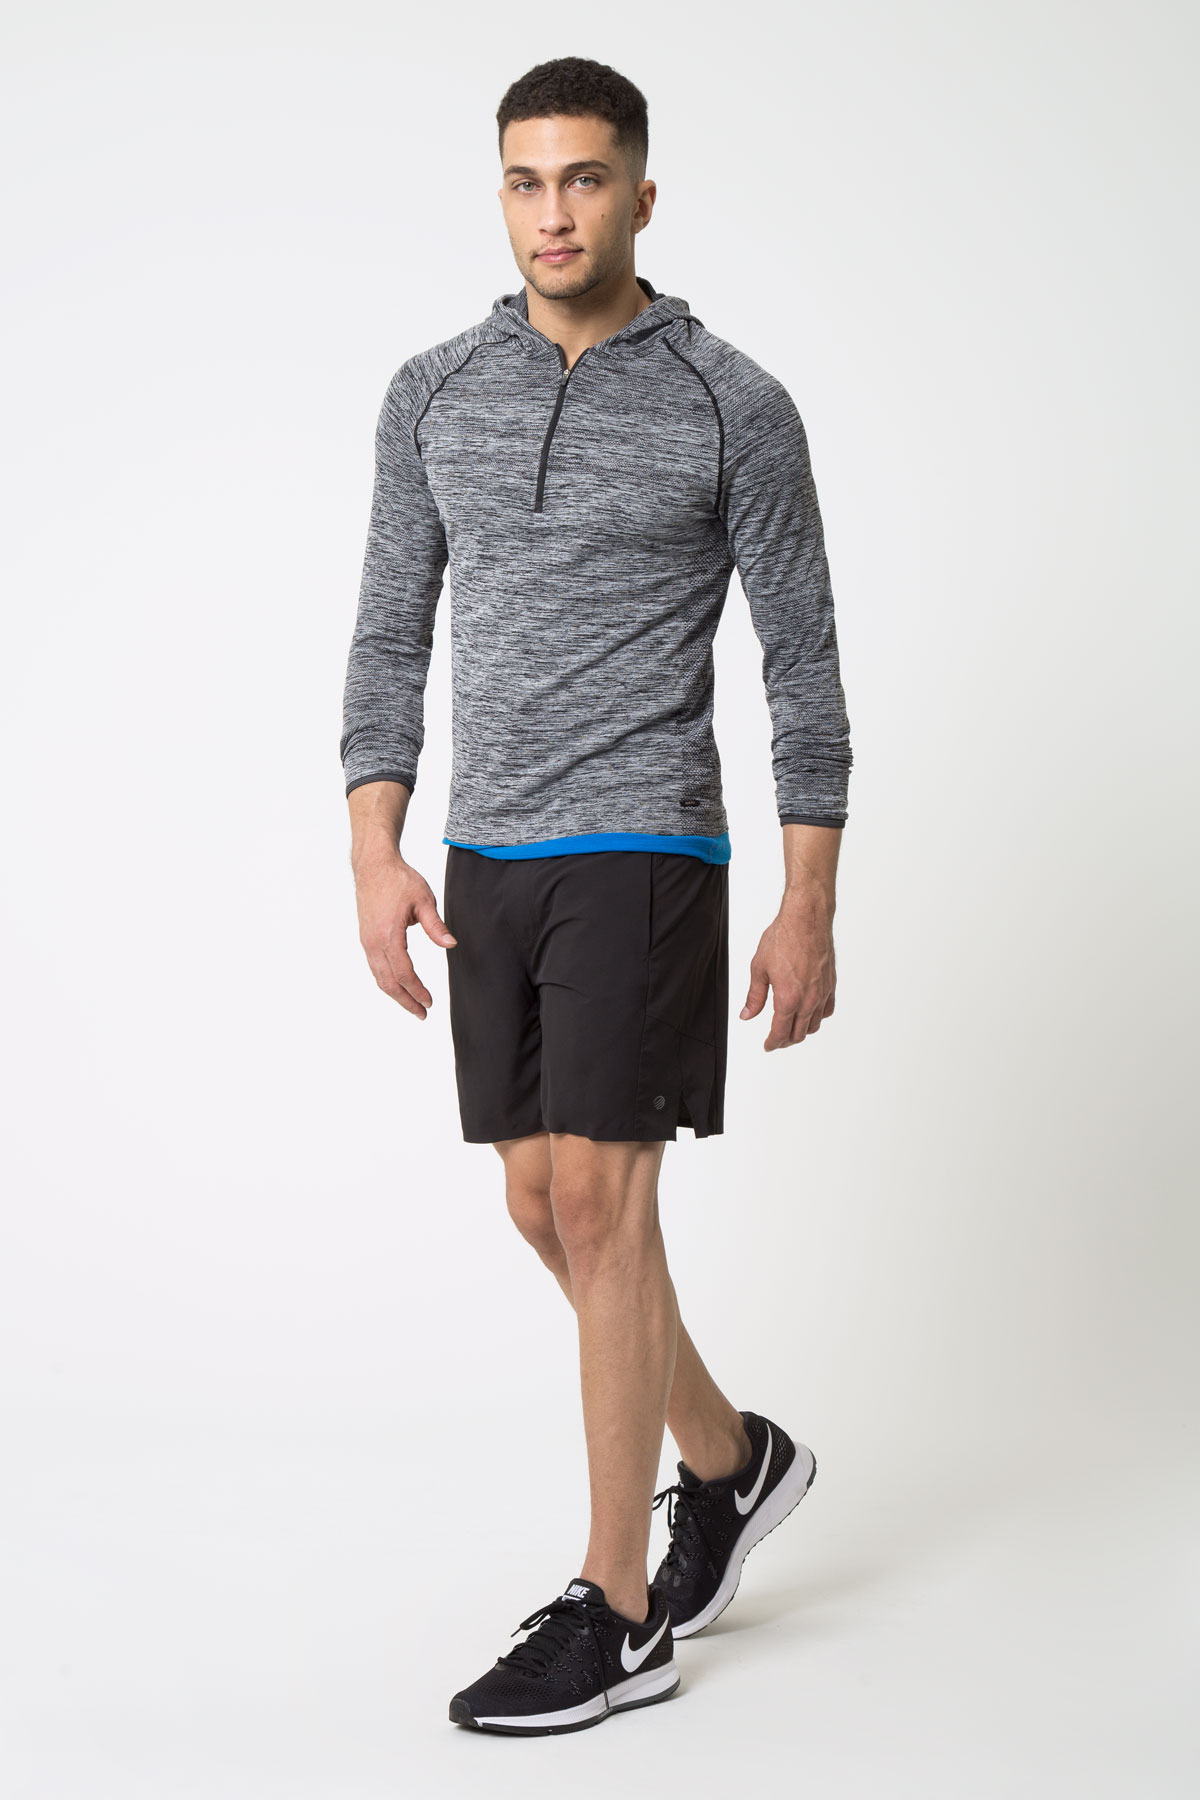 Mens Athleisure 2.jpg